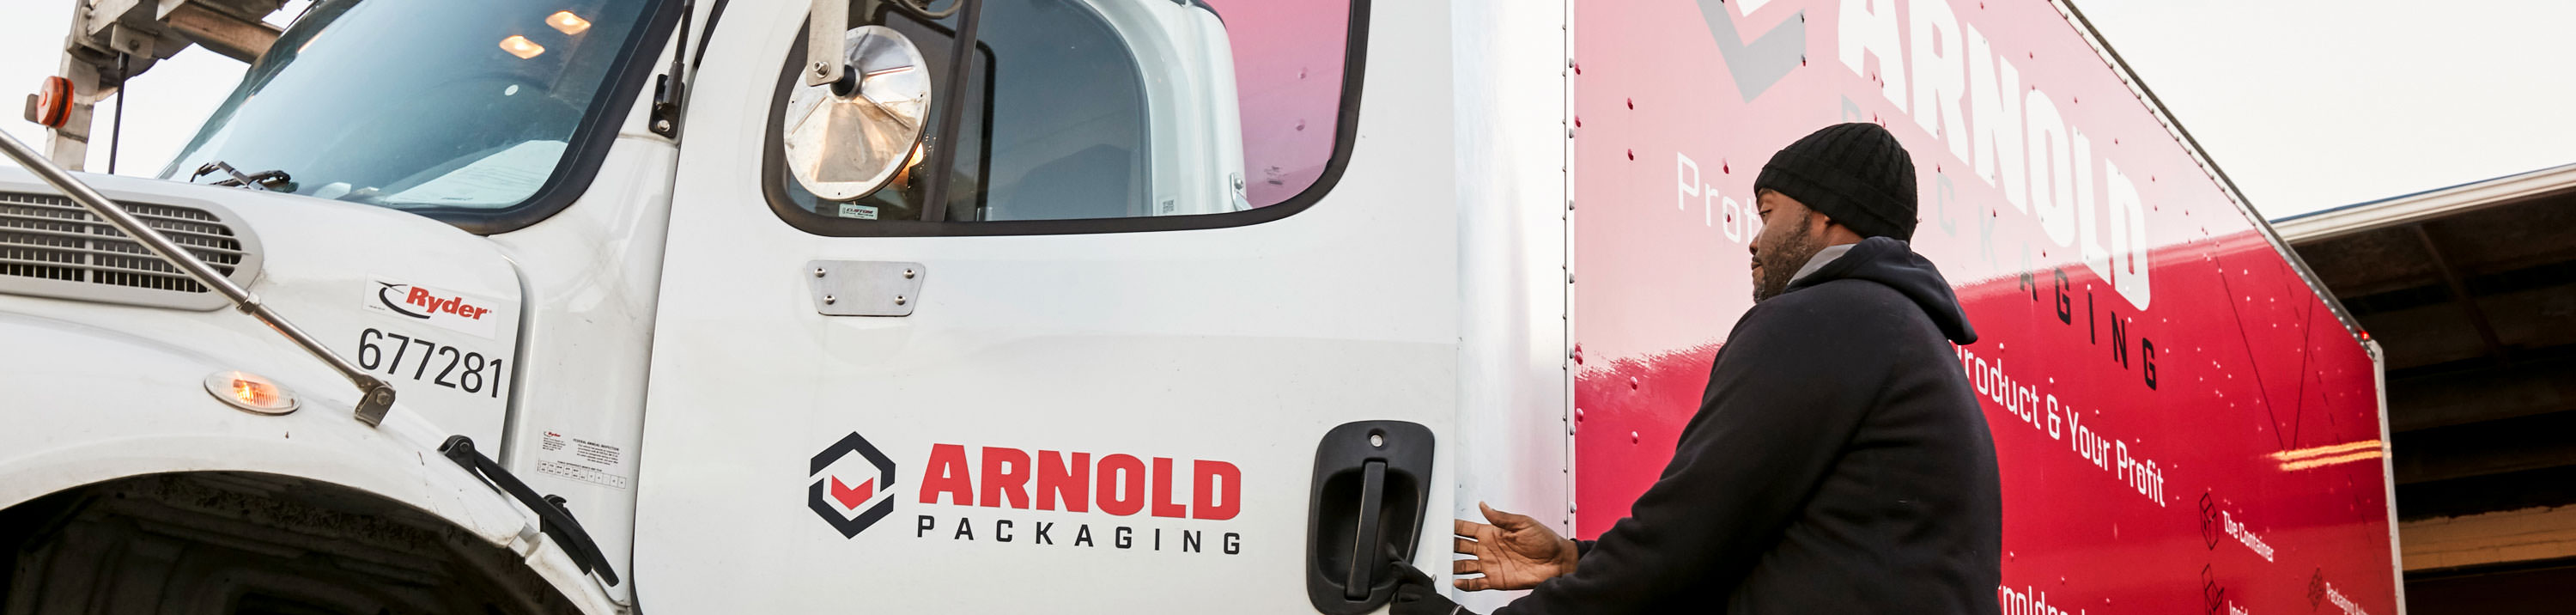 Arnold Packaging - Job Openings